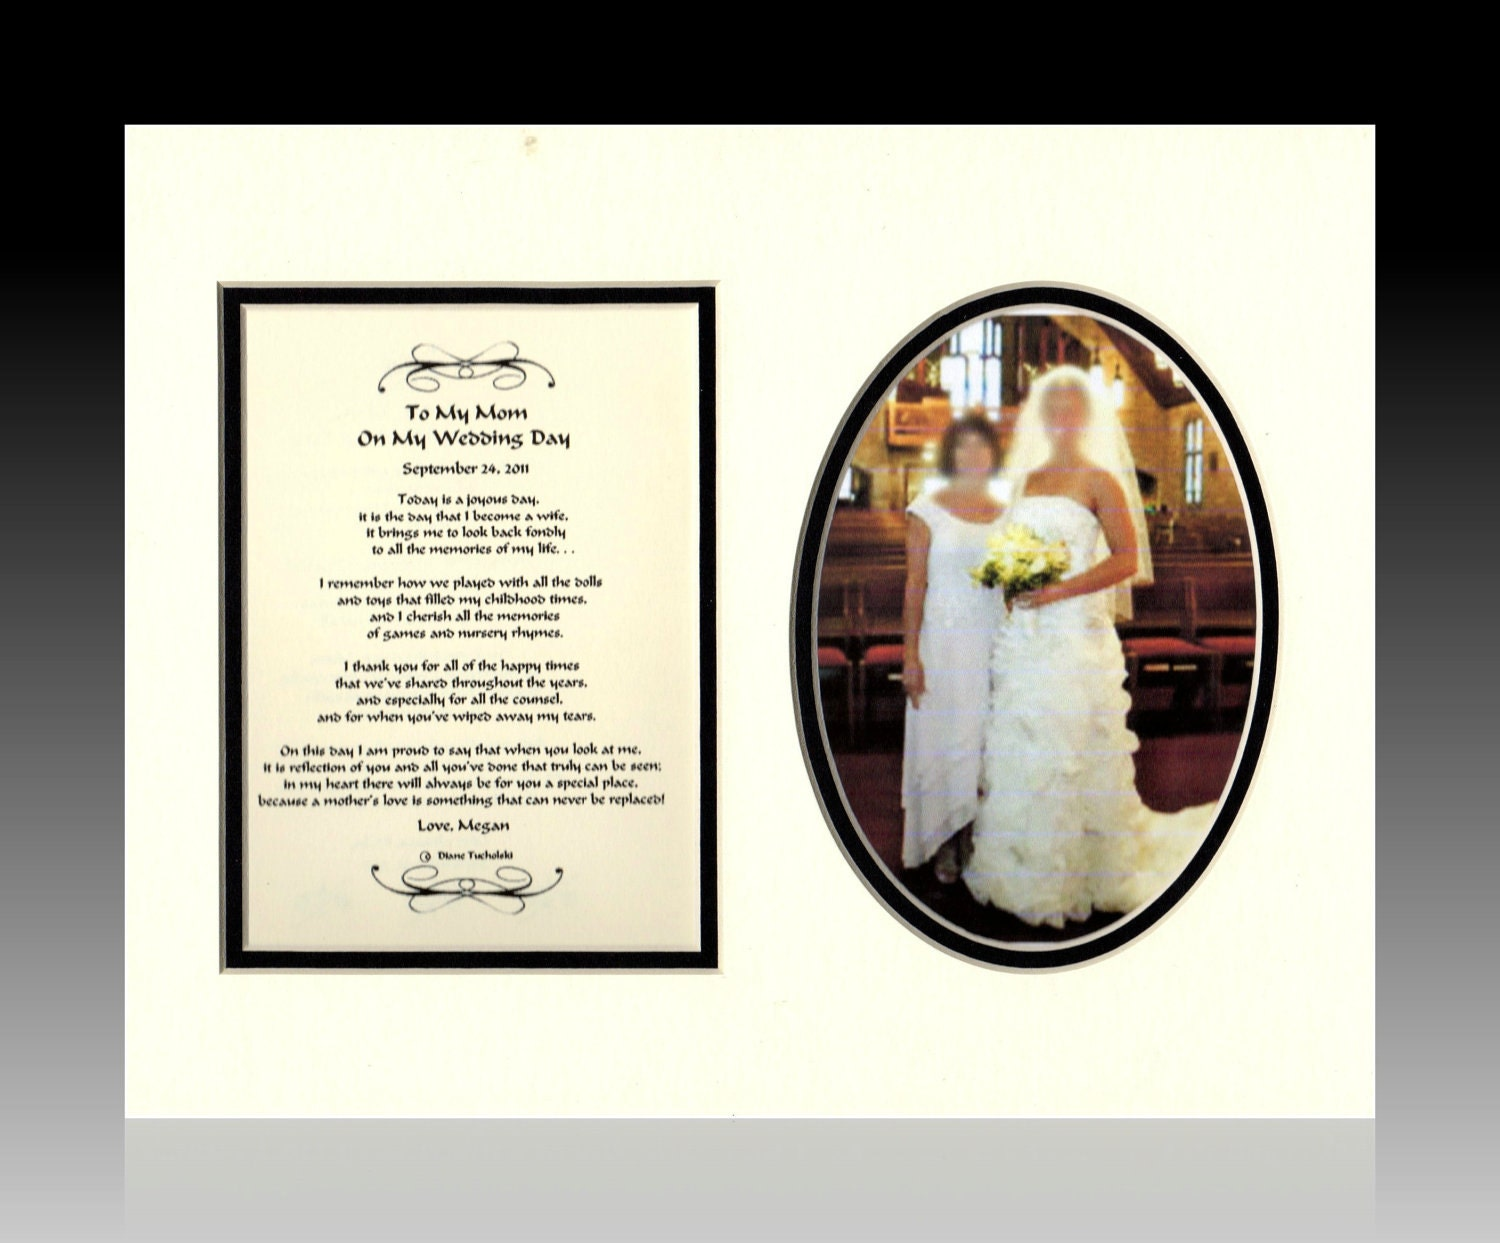 Wedding Present For My Mom : Wedding Mother of The Bride Gift Personalized To My Mom on My